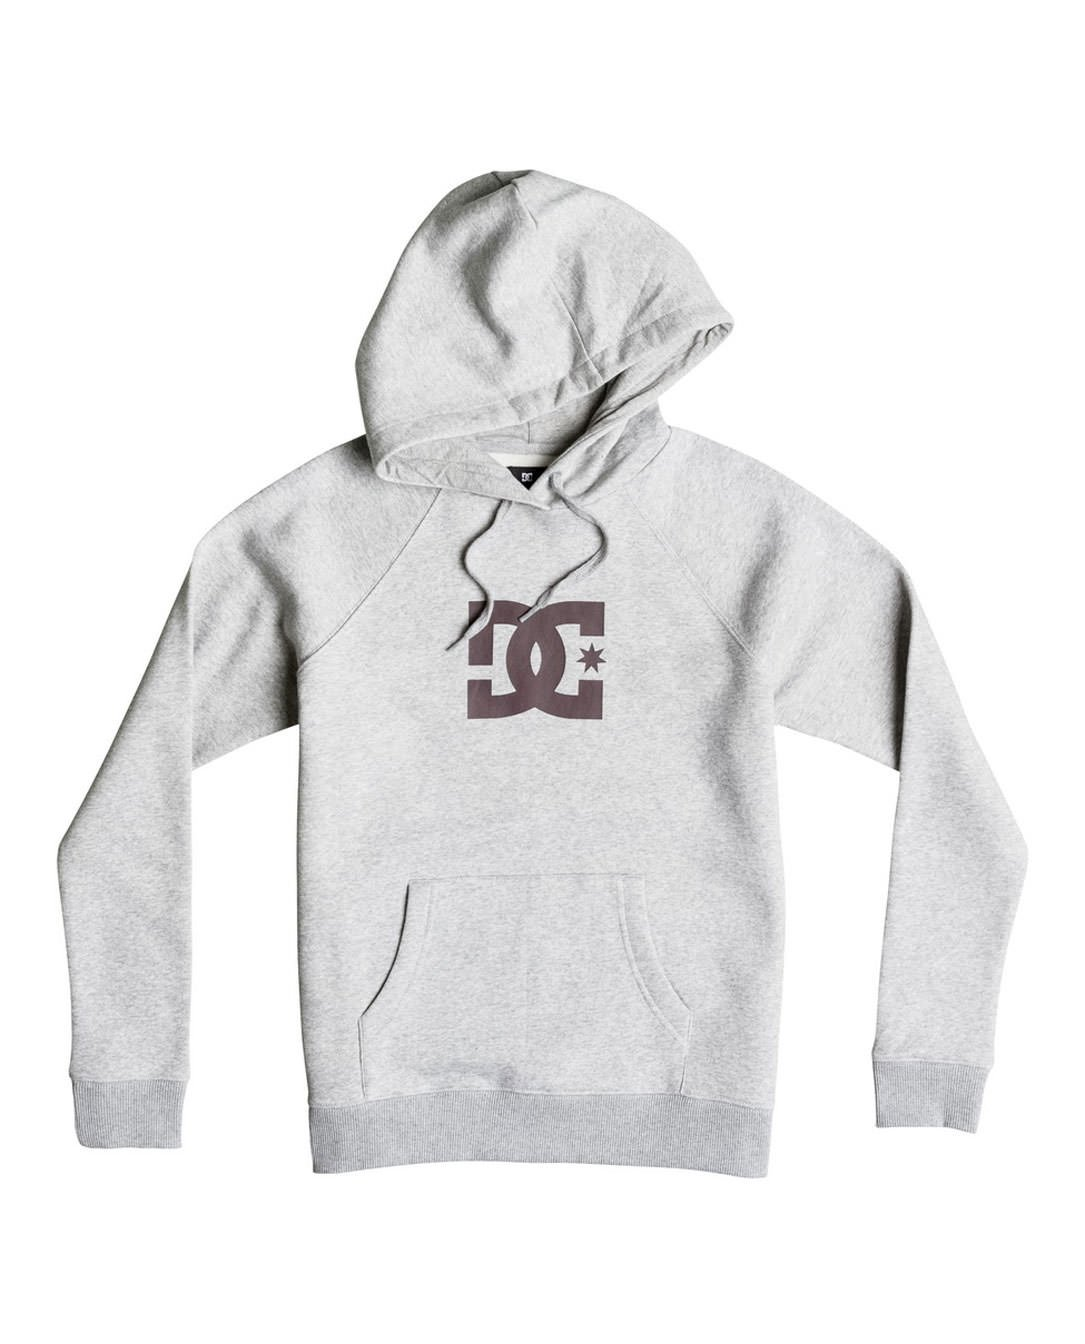 DC SHOES SWEAT WOMEN STAR KNFH - LM BOARD STORE